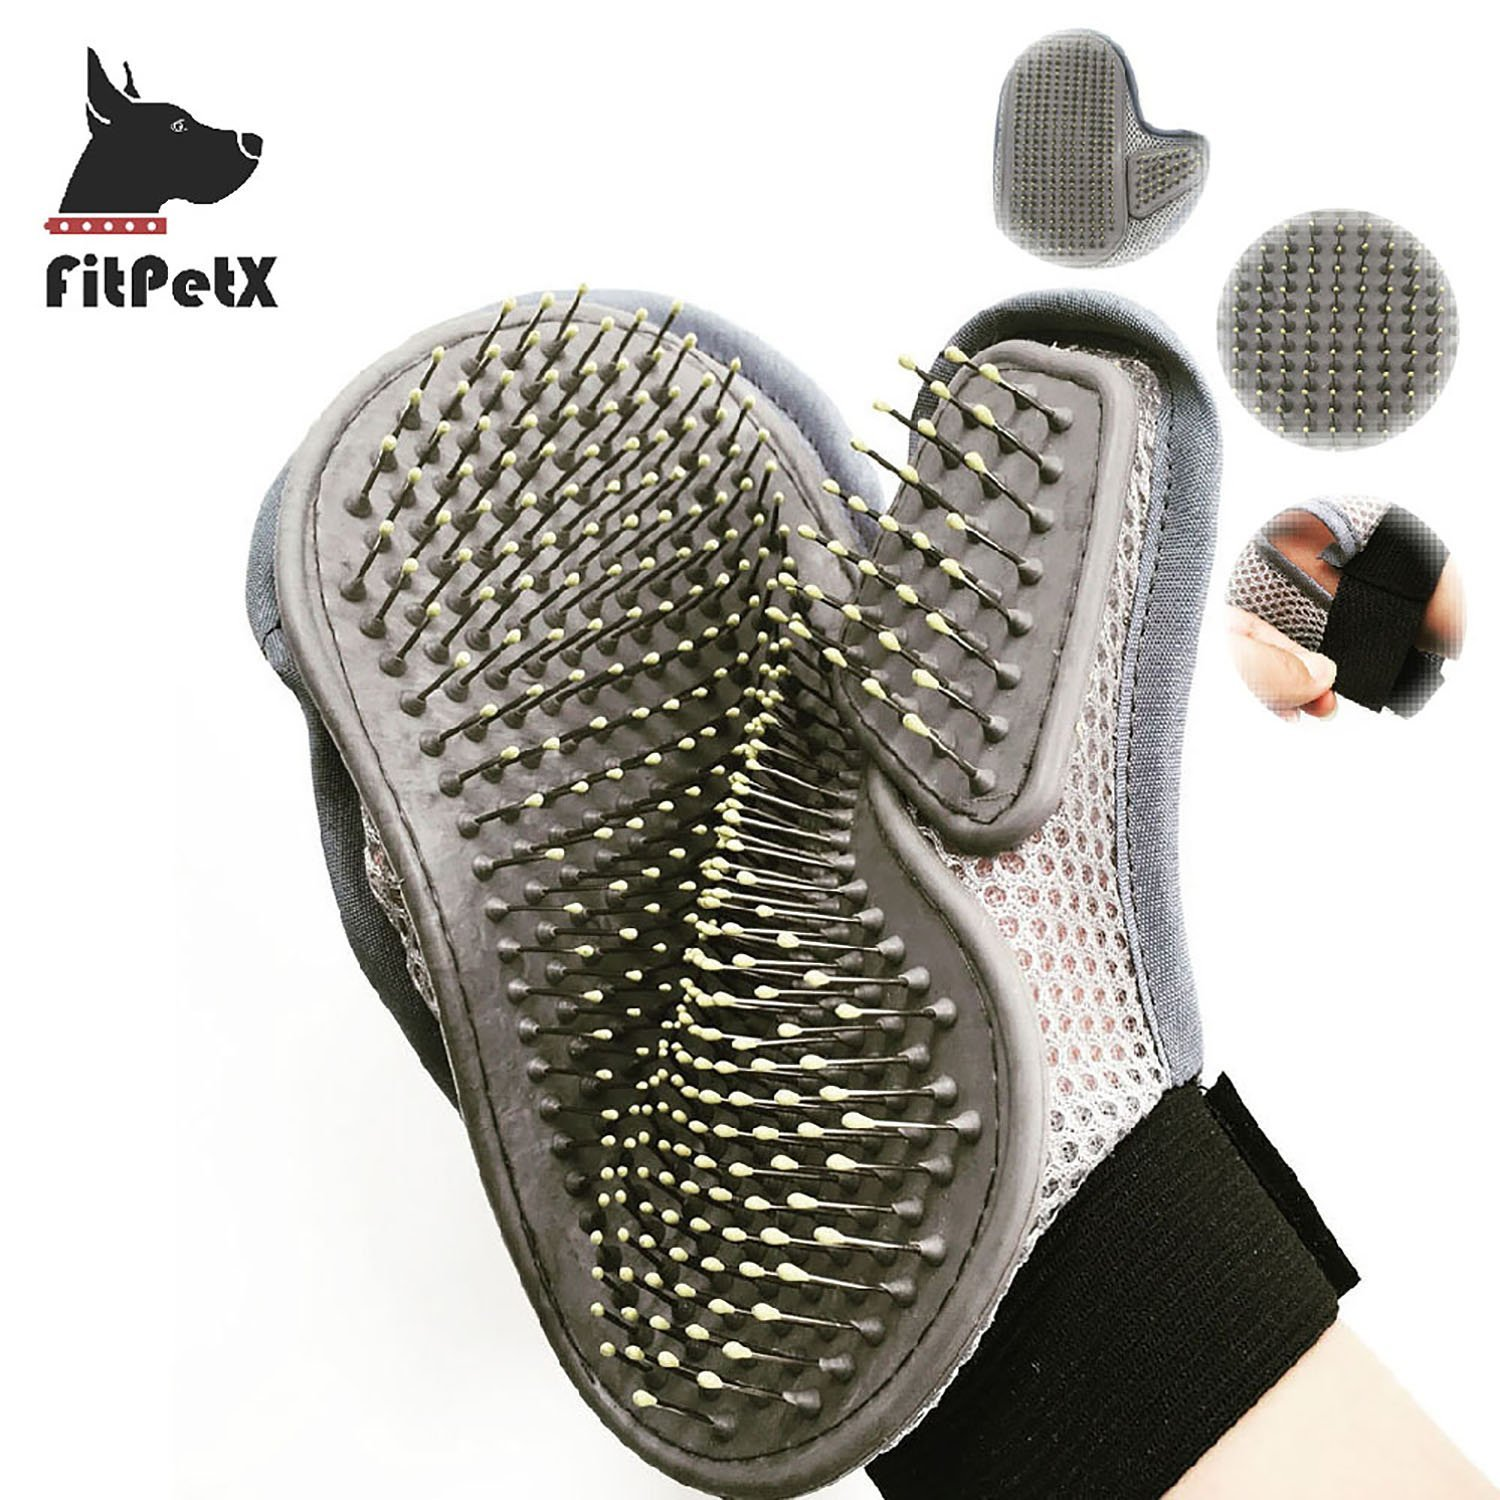 FitPetX Dog Cat Grooming Brush Glove Hair Beauty Gloves Hair Remover for Long & Short Hair, Great Pet Shedding Brush